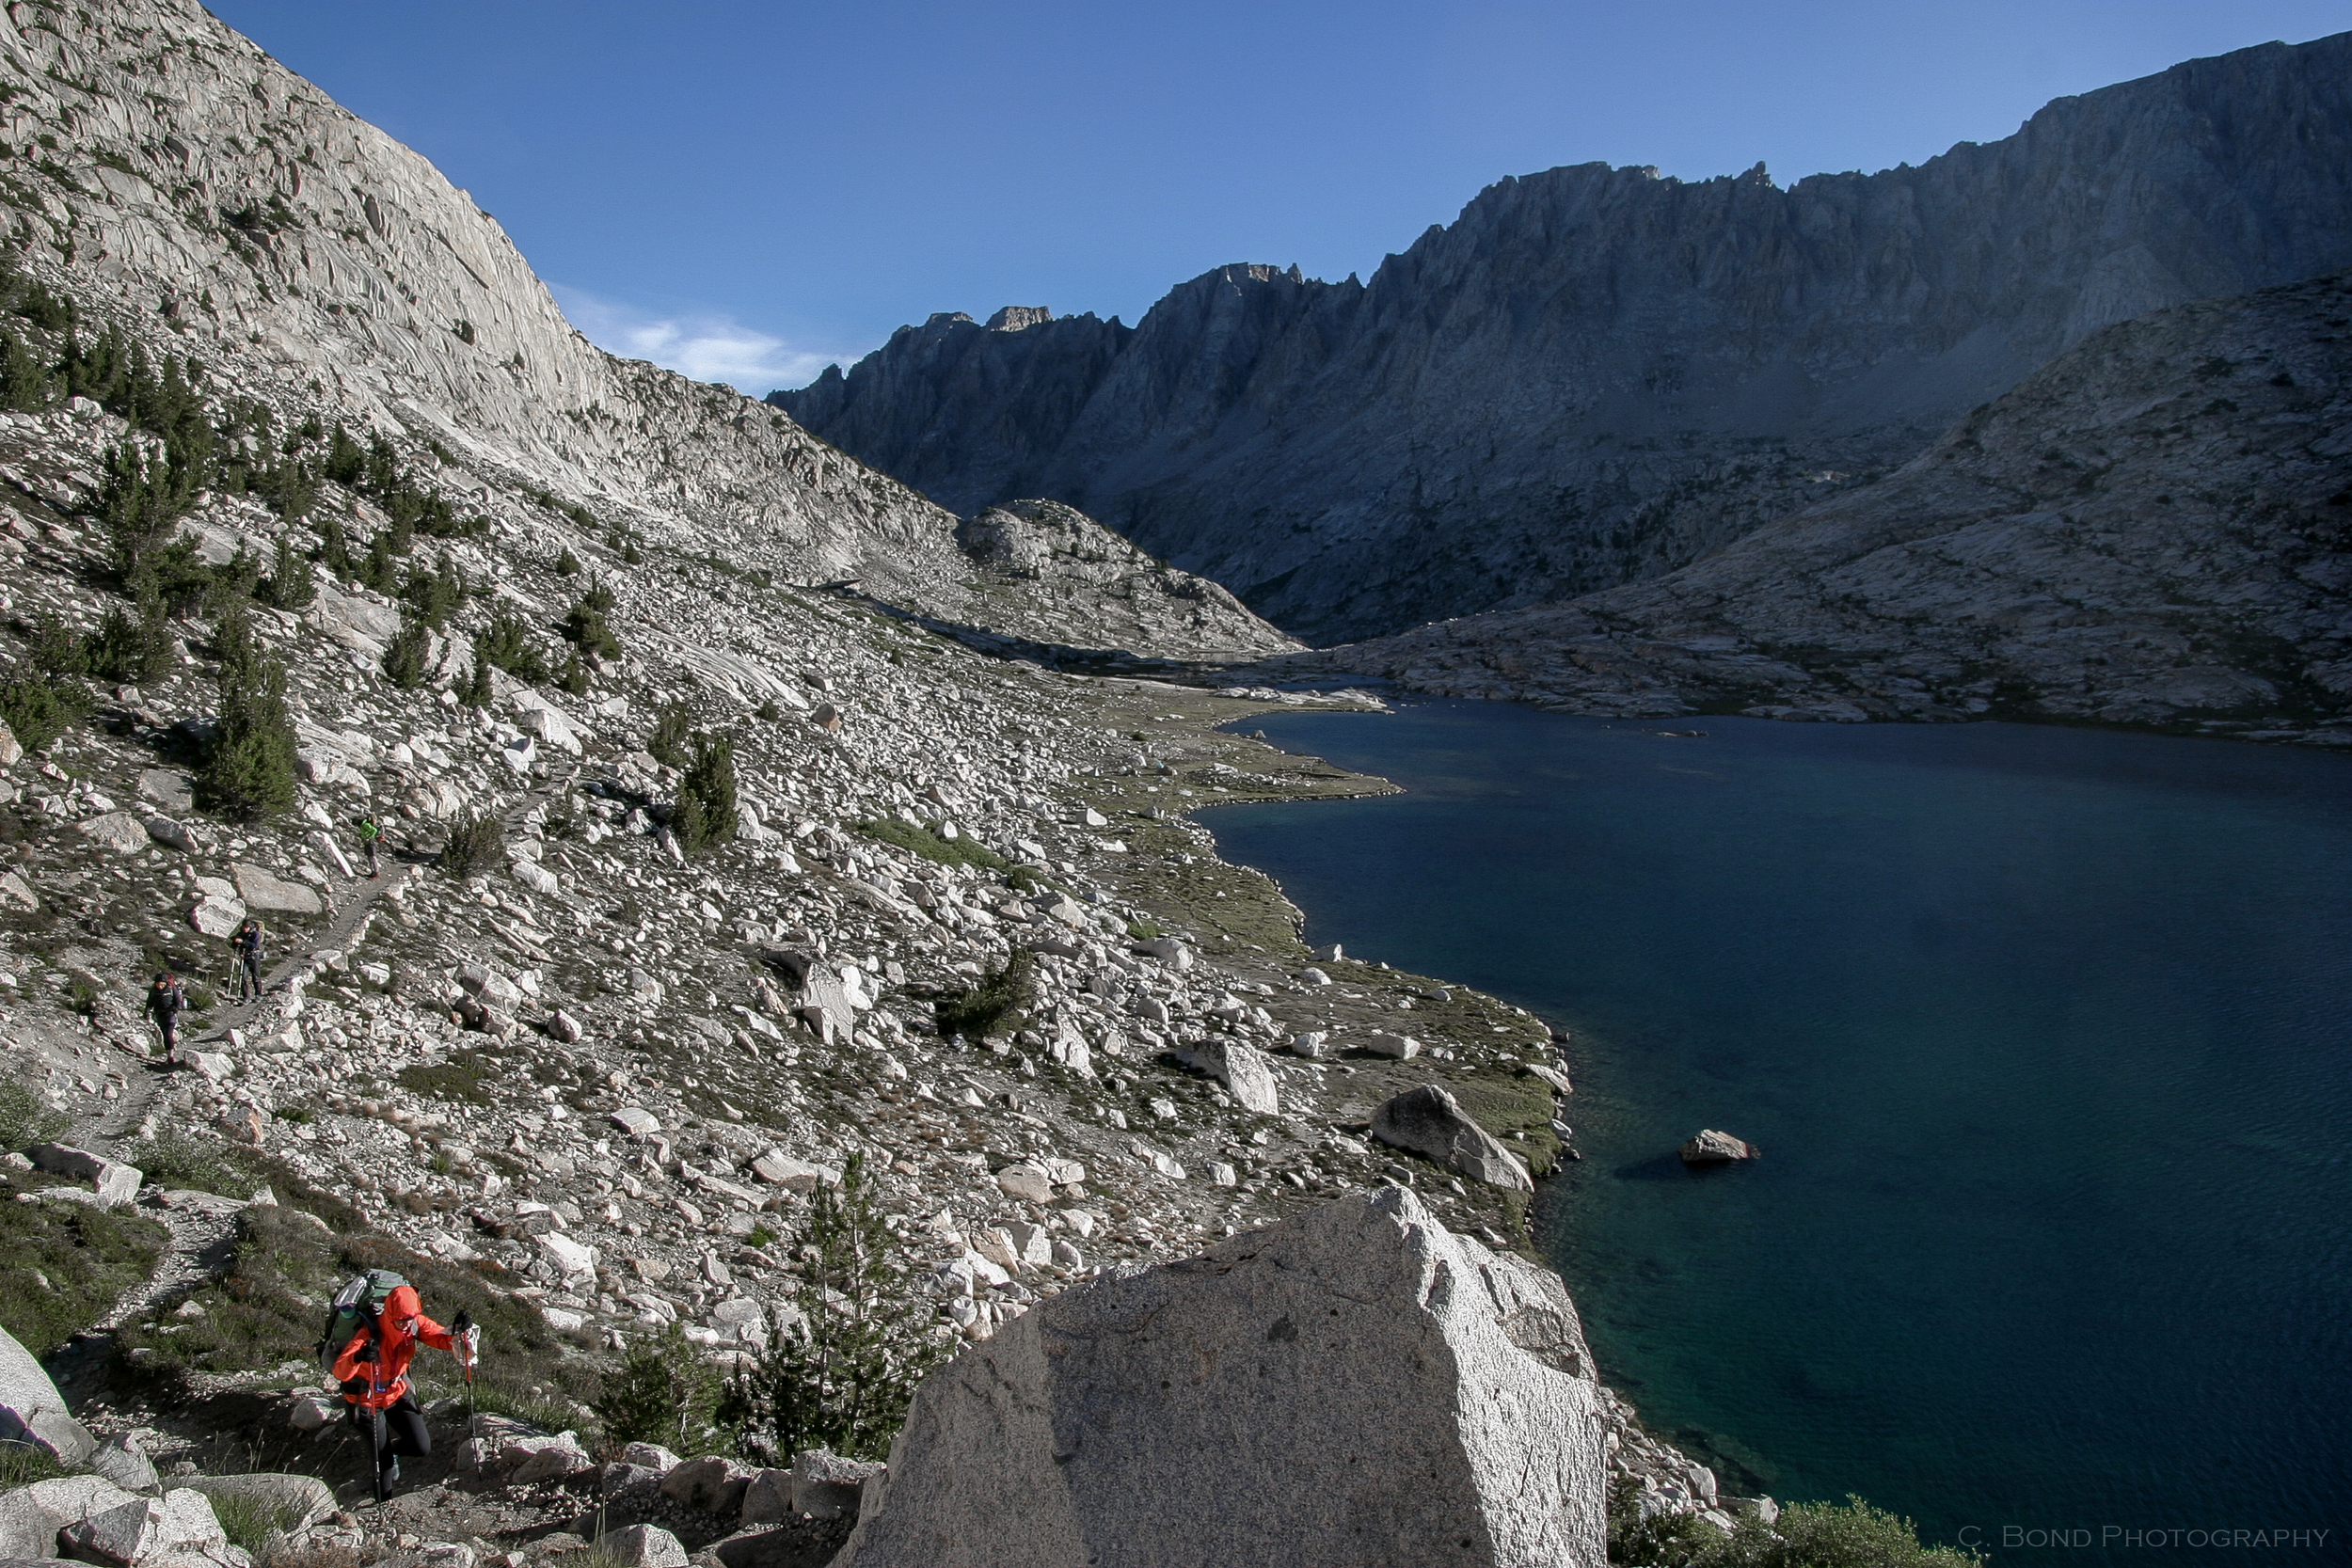 Day 16, Thursday 8/14: Brisk Climb From Sapphire Lake